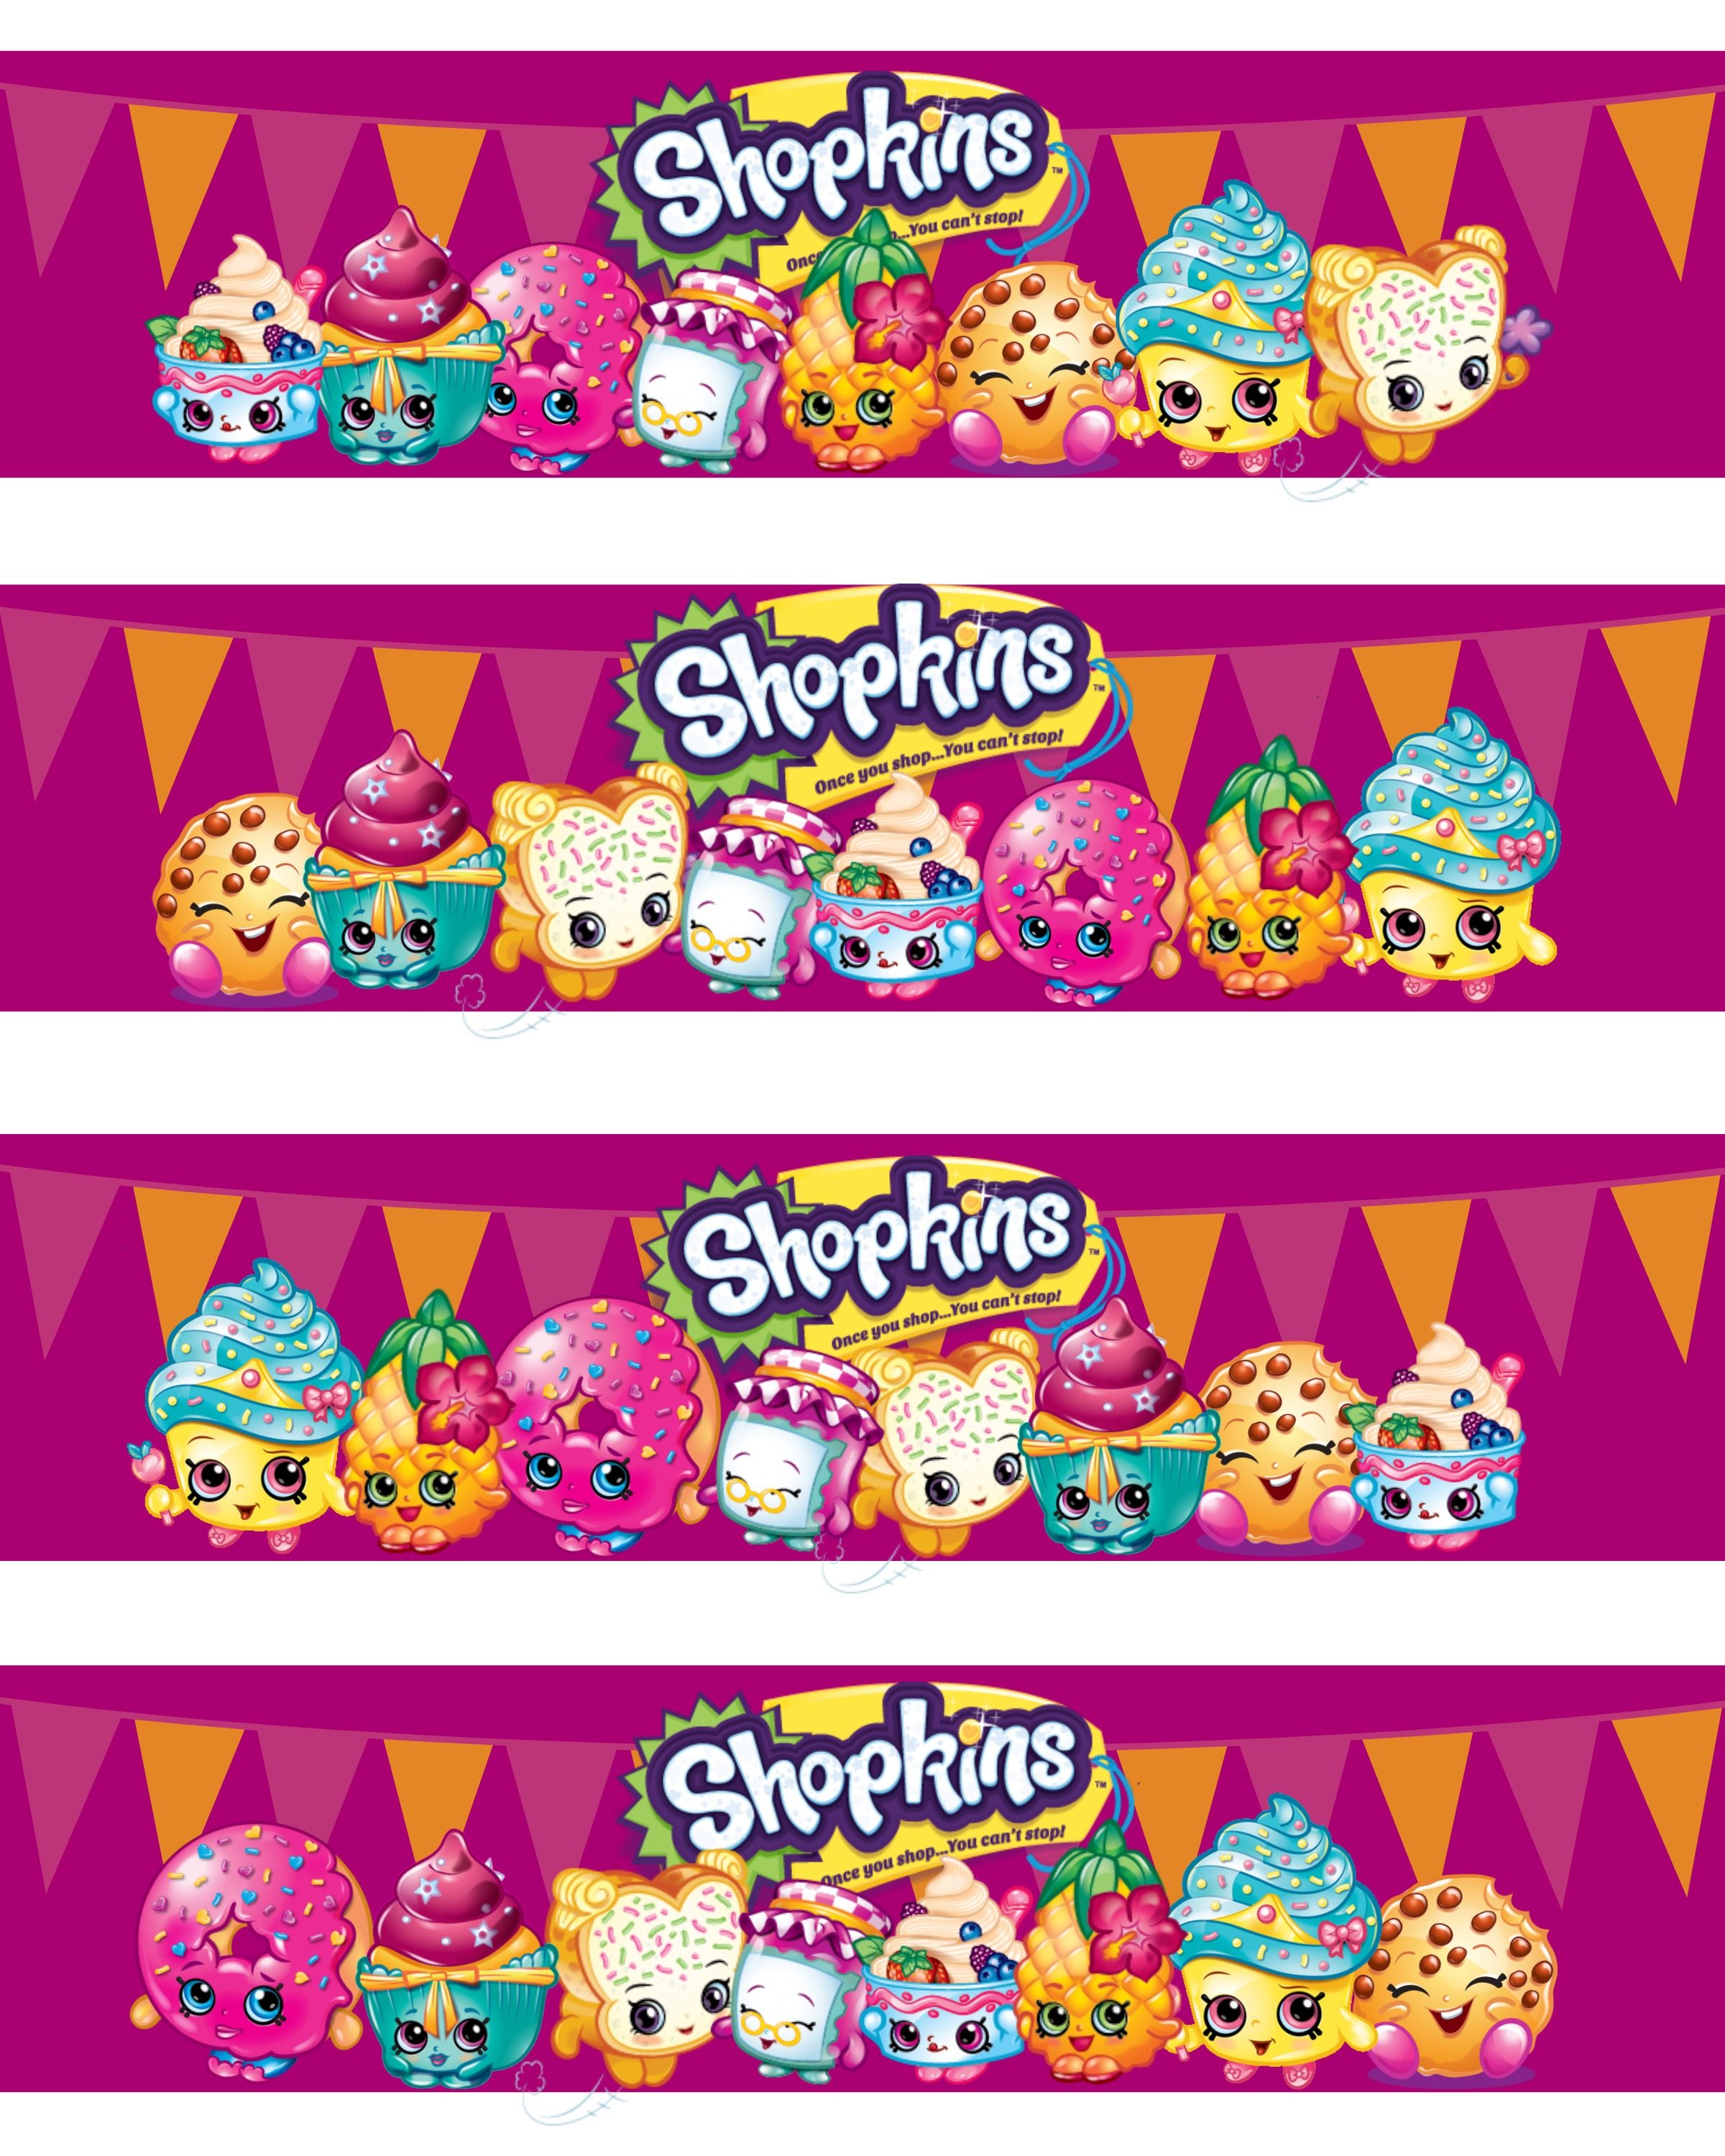 Water bottle shopkins clipart svg free library 17 Best images about Shopkins Party on Pinterest   Dessert buffet ... svg free library